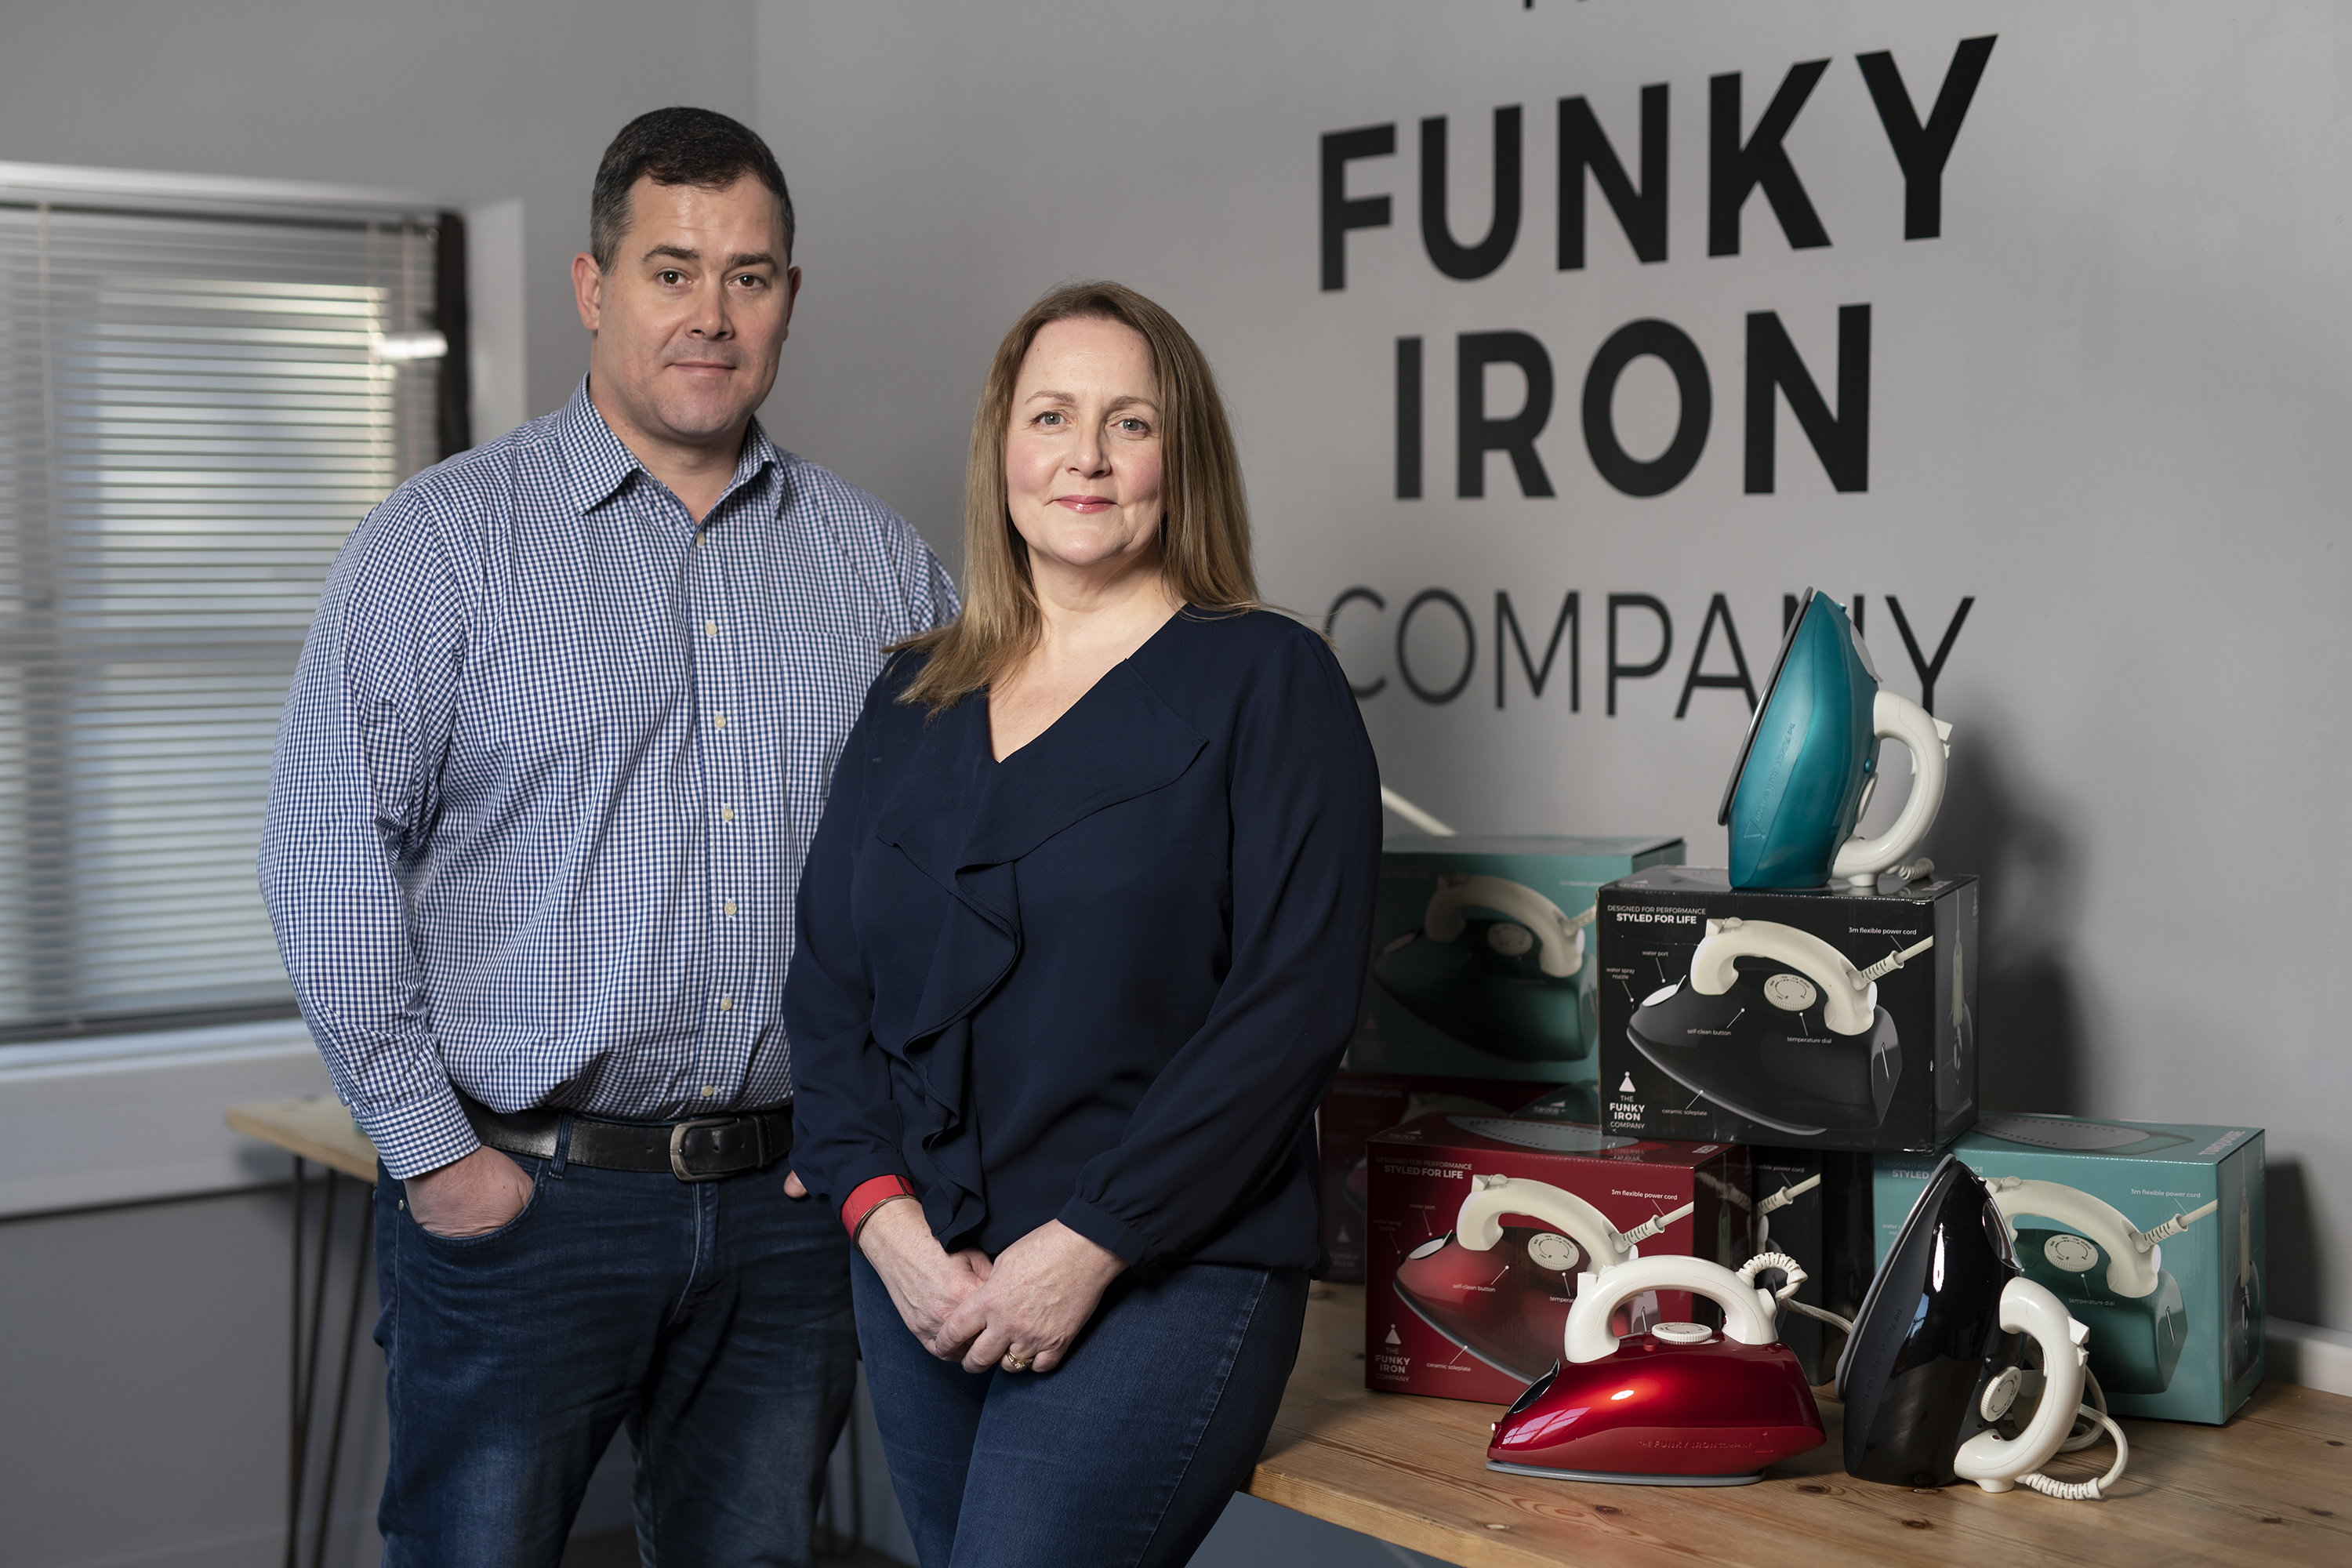 The Funky Iron Company founders